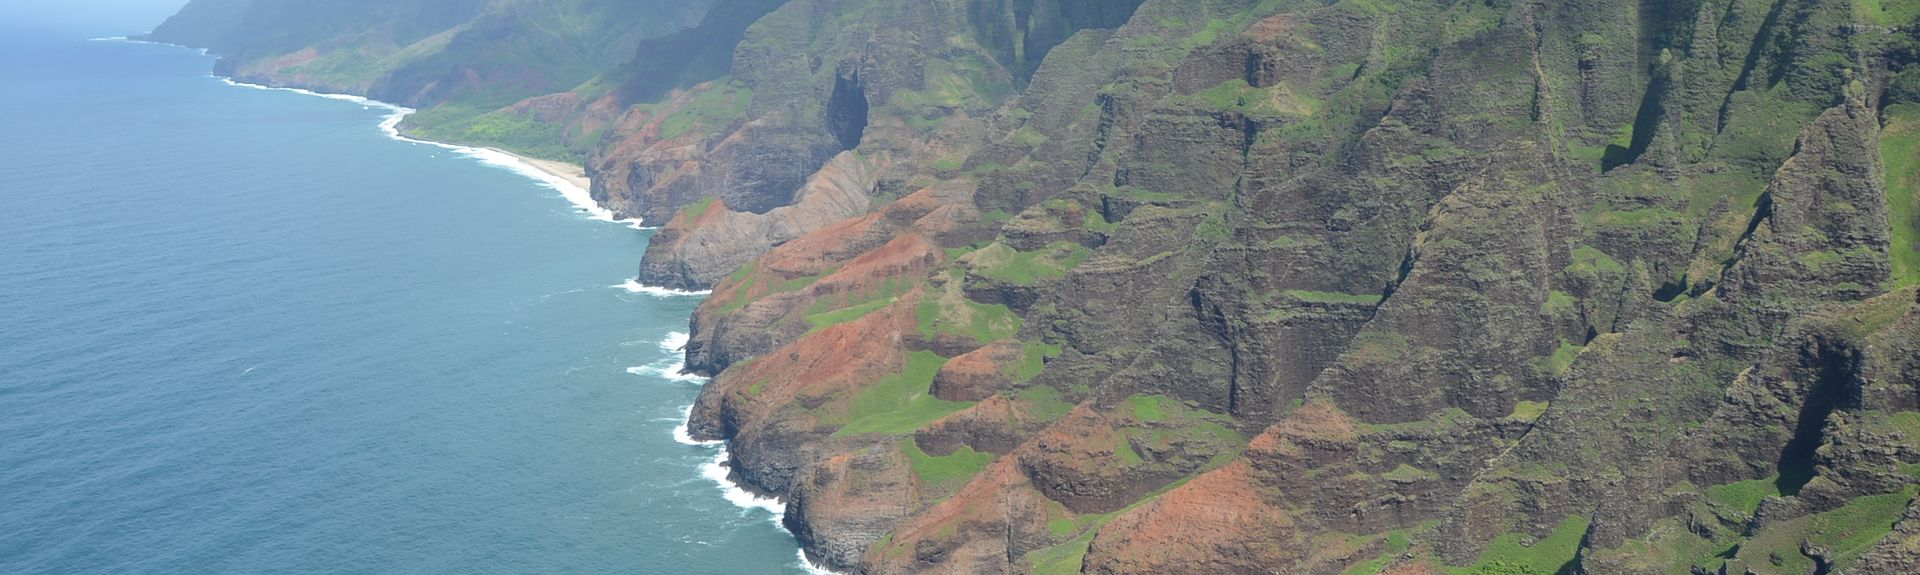 The Cliffs, Princeville, HI, USA